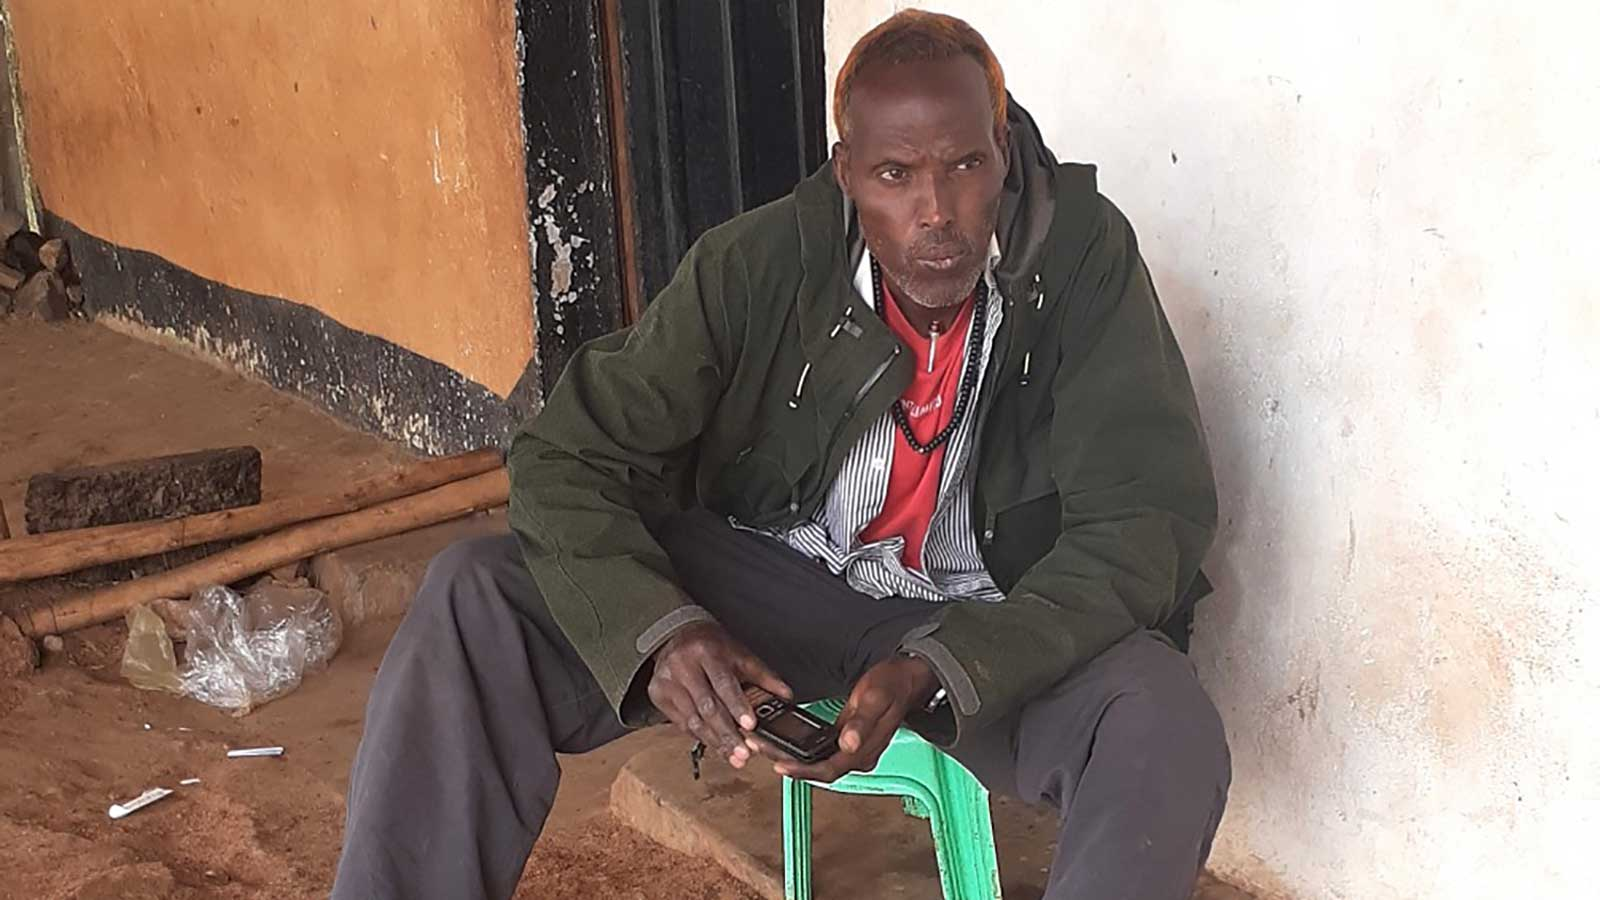 COVID-19 in Ethiopia | No customers, no income for father of 10